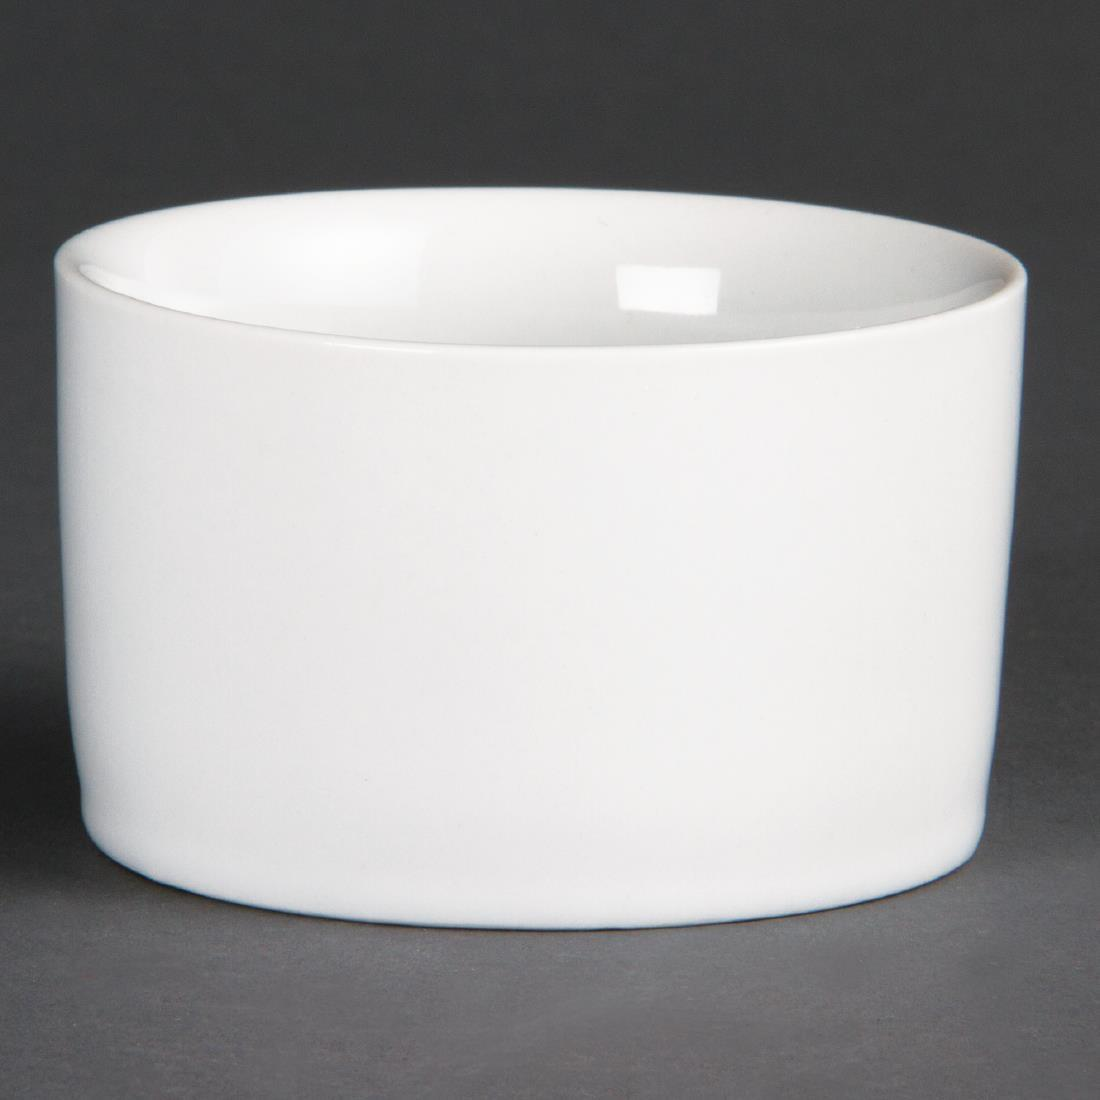 Olympia Whiteware Contemporary Ramekins 80mm